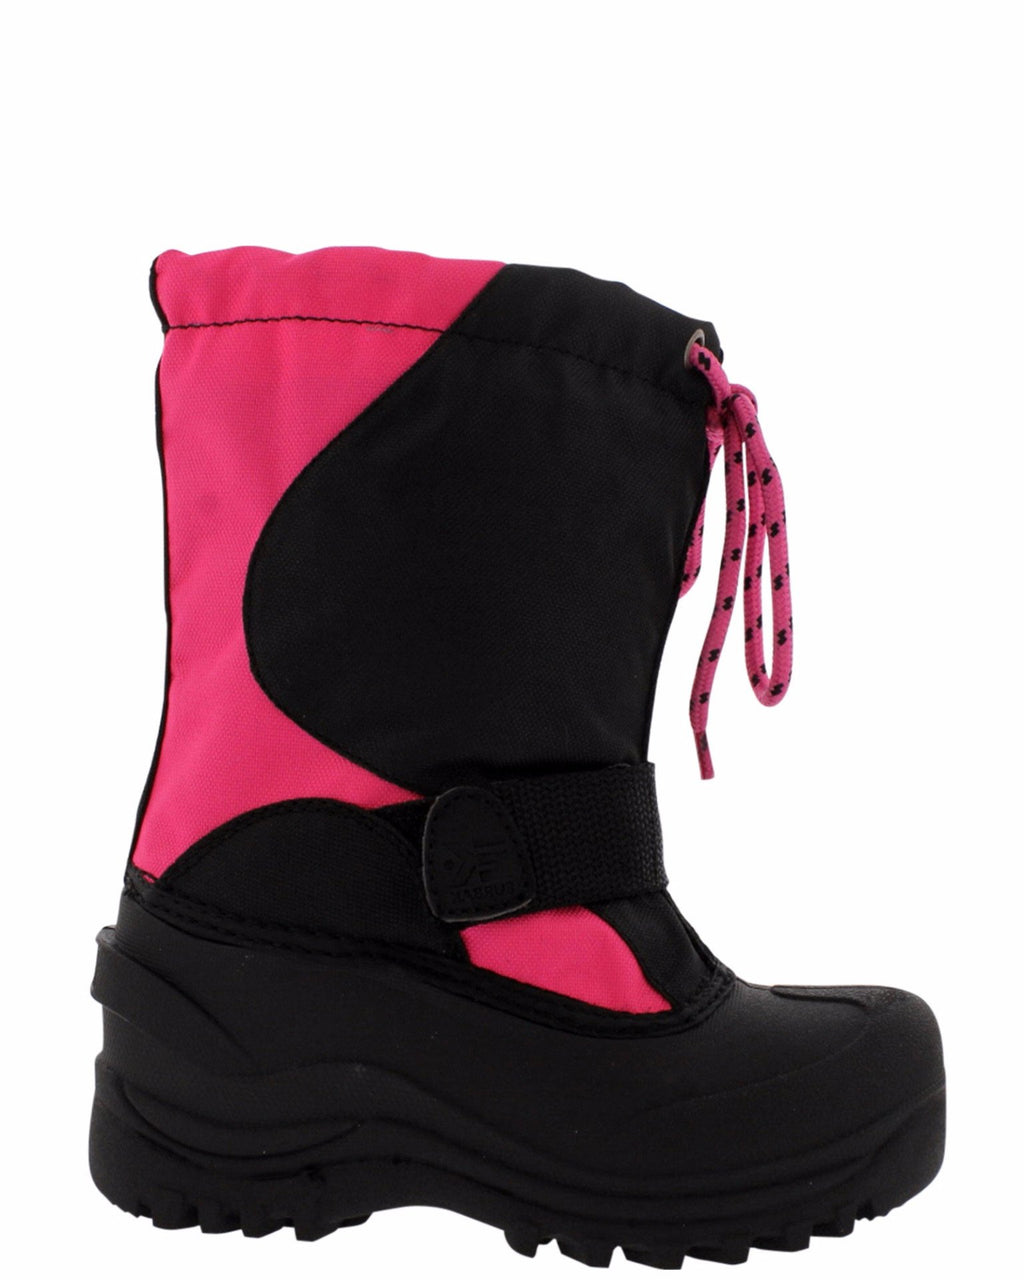 Girl's Insulated Snow Boots (PreSchool)